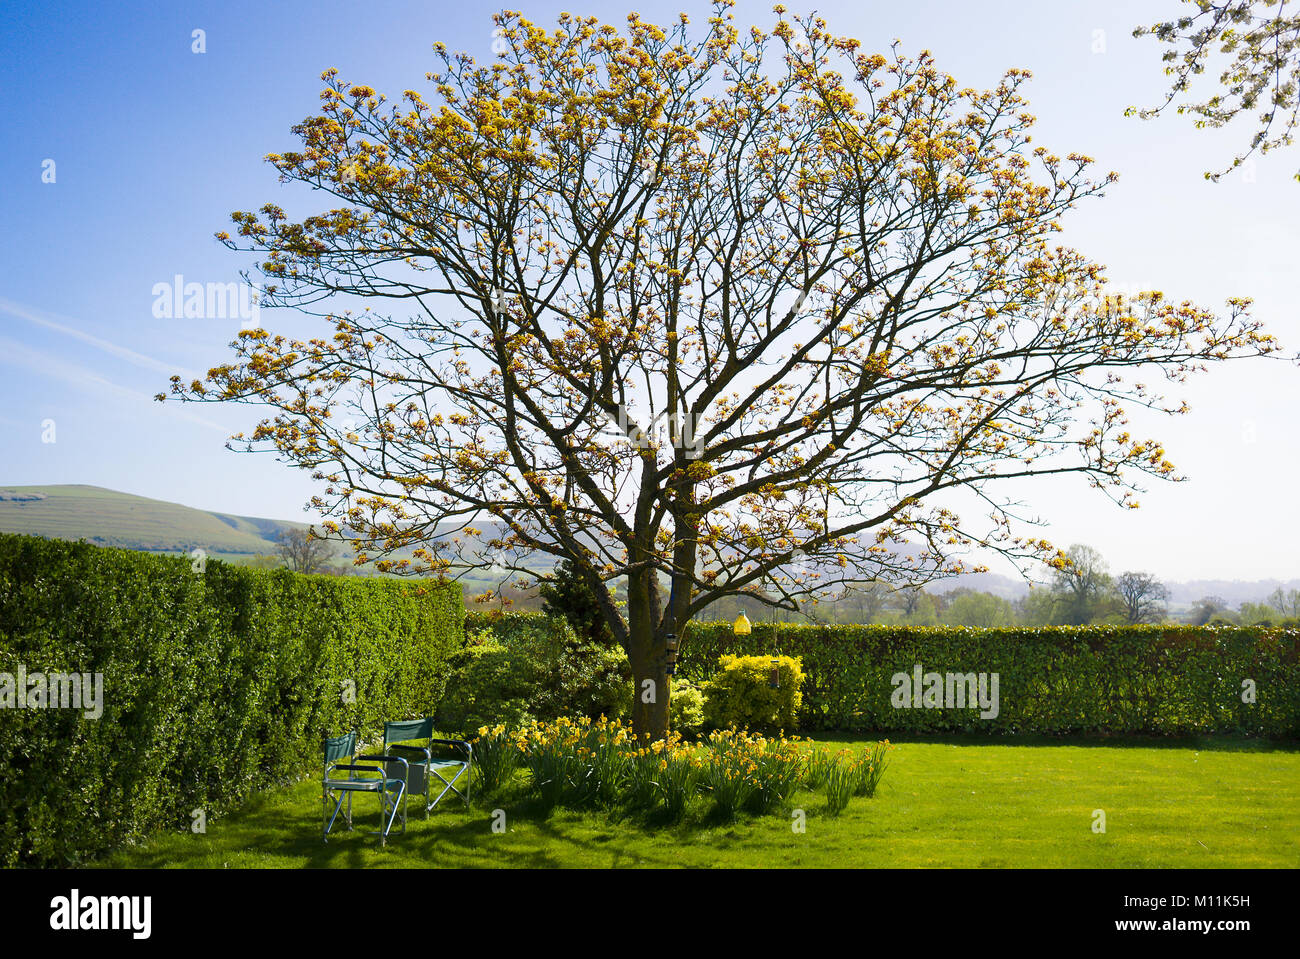 Springtime in an English country garden with a field maple flowering in April - Stock Image